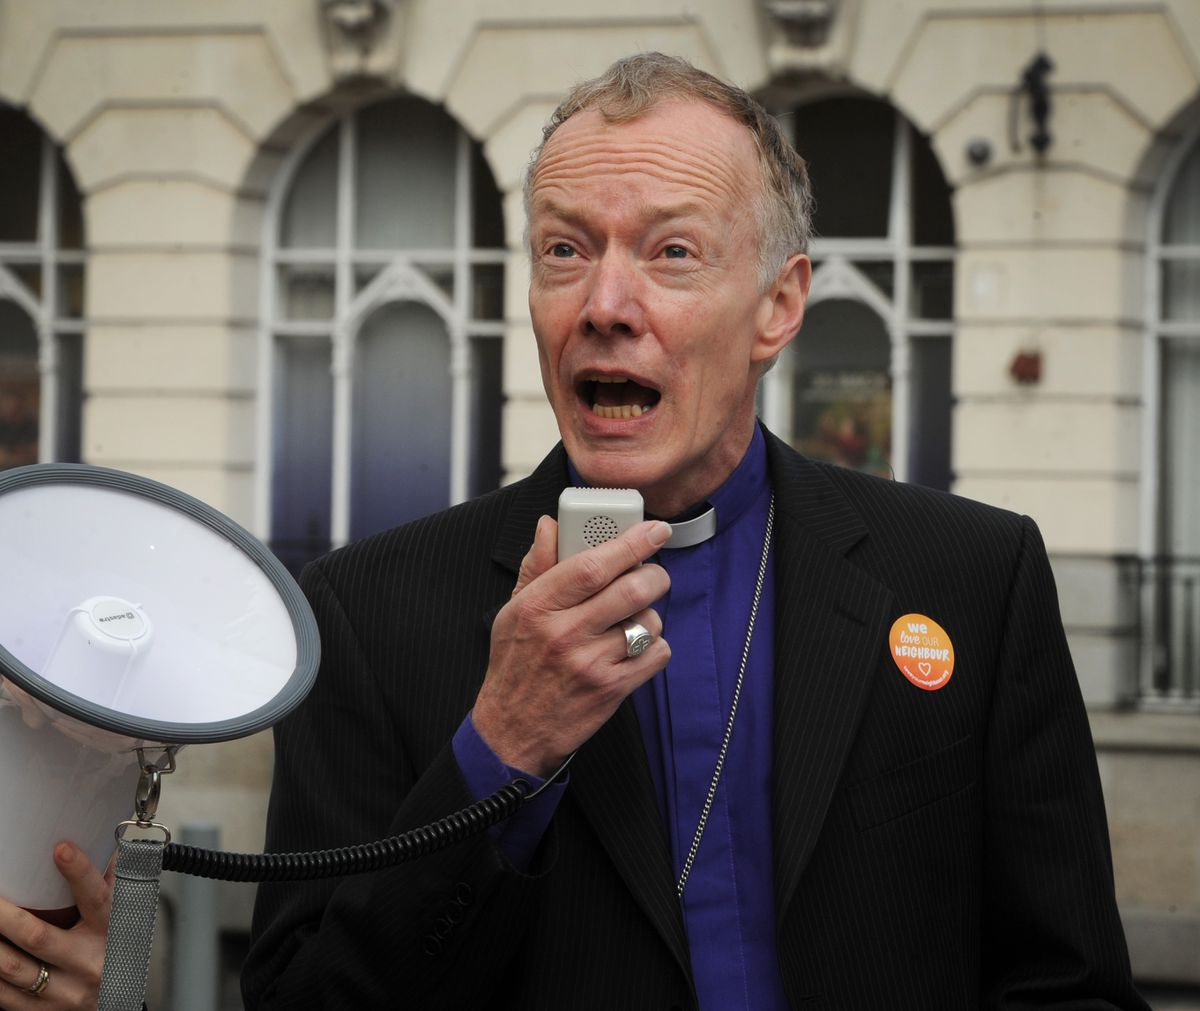 The Rt Revd Clive Gregory, the Bishop of Wolverhampton